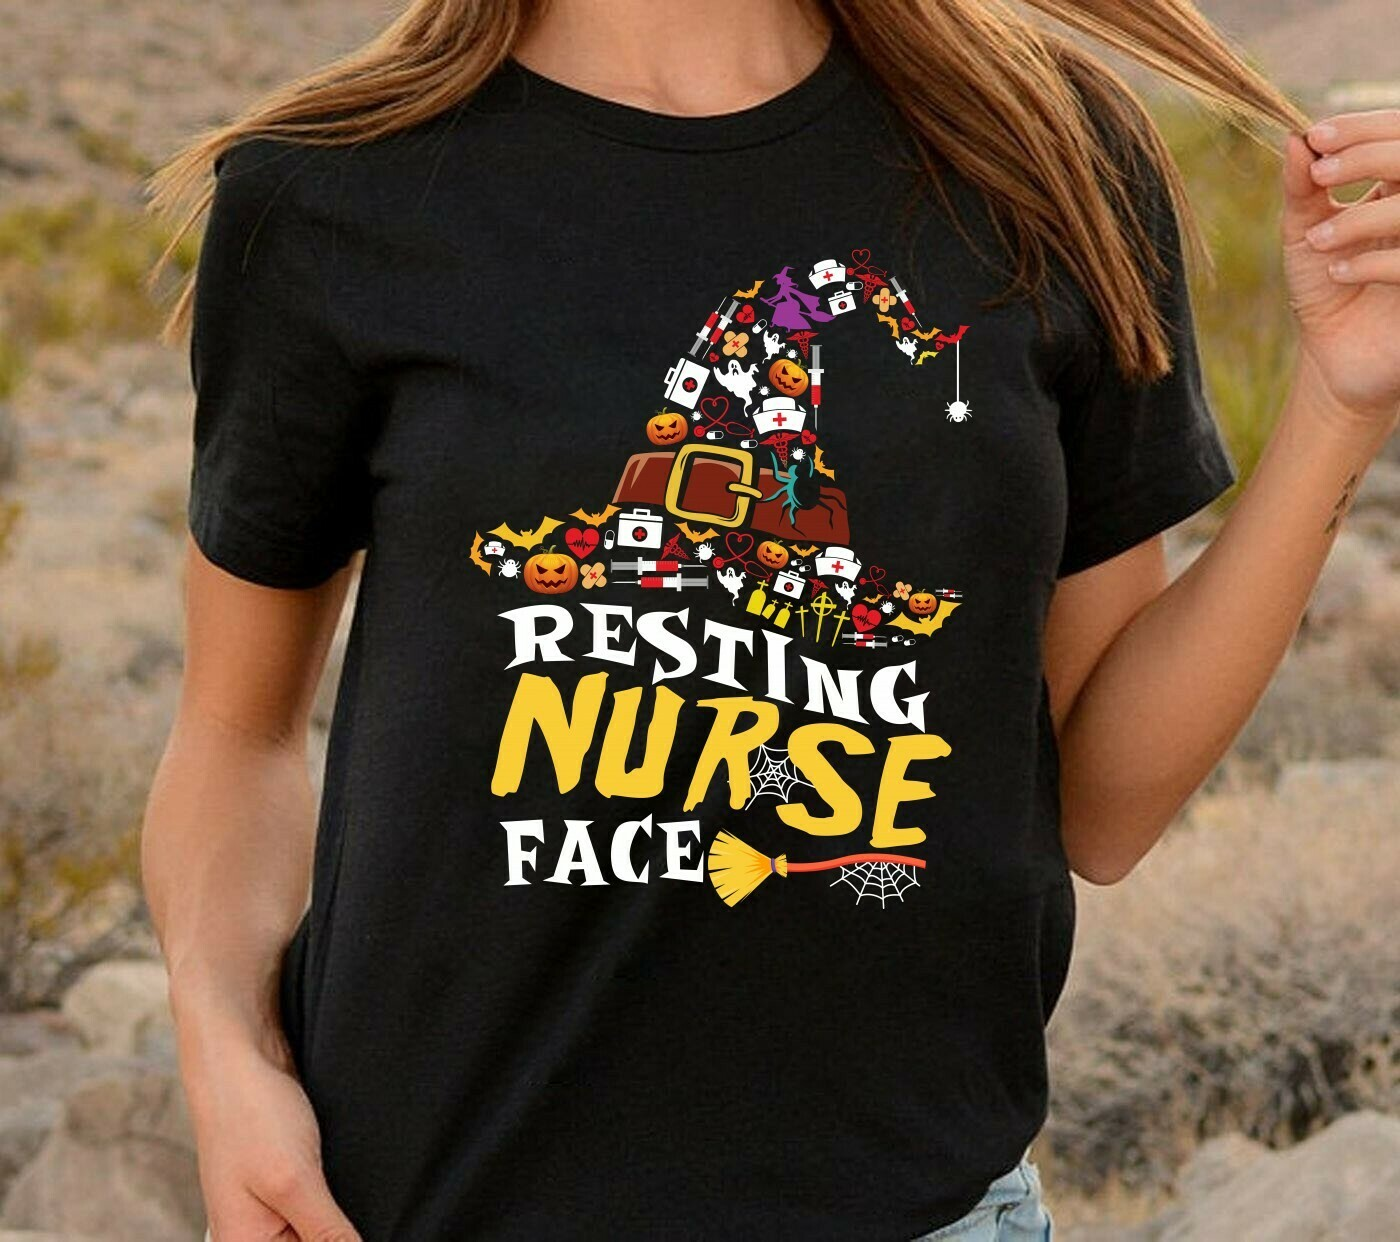 Witch Hat Resting Nurse Face Gifts for Nurses Love Nurselife Heartbeats Nursing Student Graduation School RN Registered On Halloween T-Shirt Long Sleeve Sweatshirt Hoodie Jolly Family Gifts